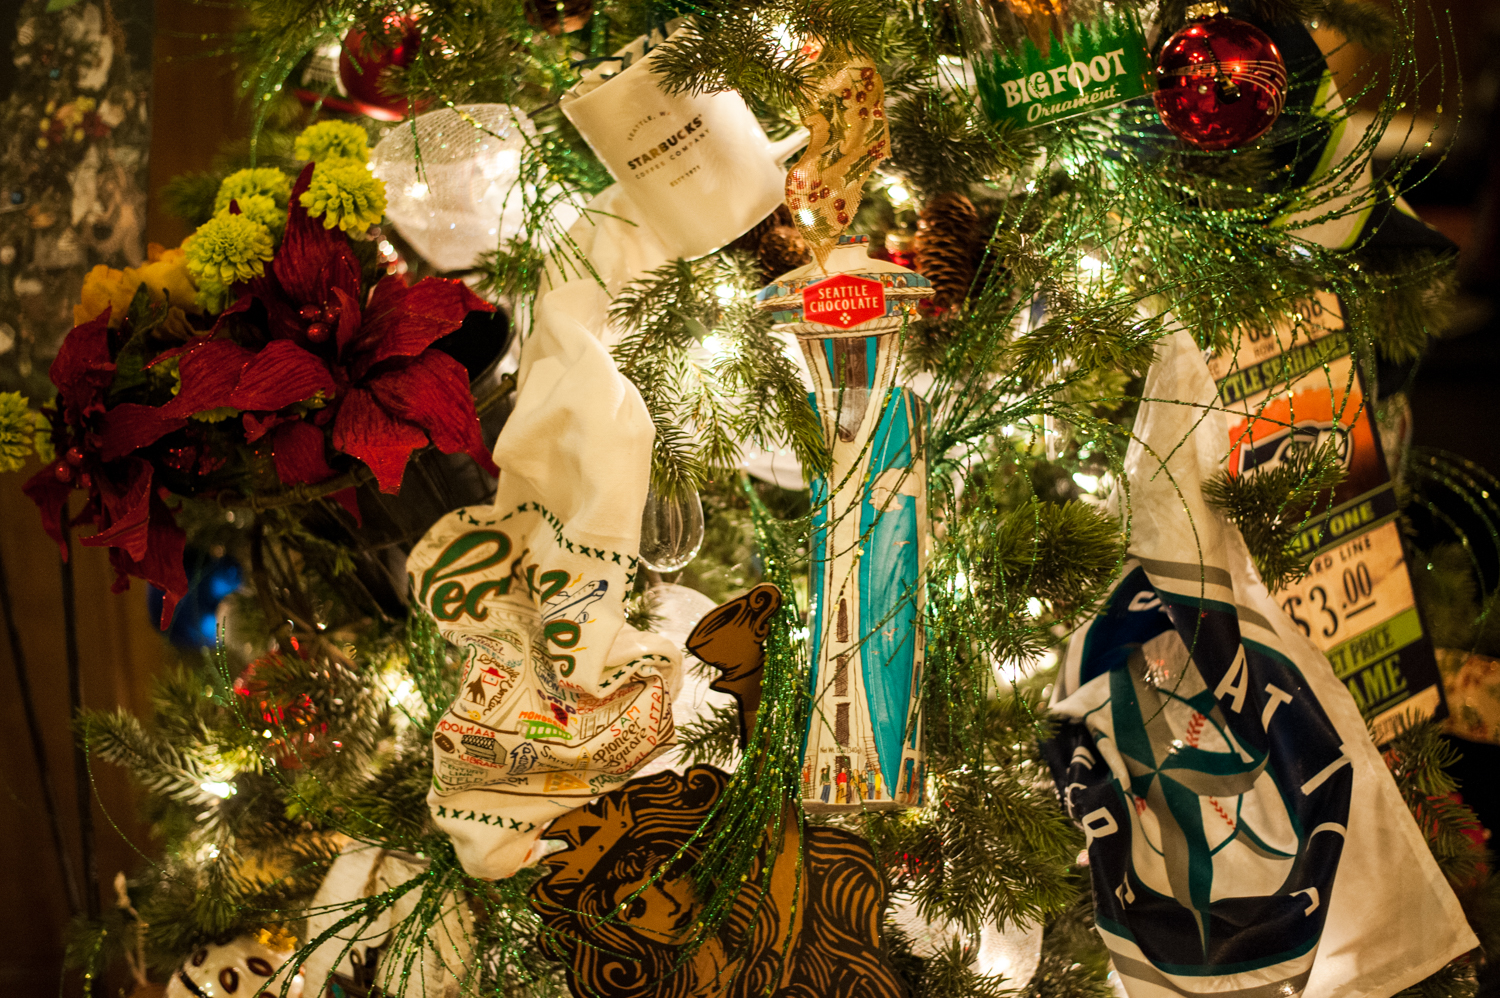 <p>Seattle Greetings- 7.5 feet tall, a tree filled with iconic Seattle memorabilia.. Located in the Fairmont Olympic Hotel in downtown Seattle, the annual Festival of Trees has officially kicked off this holiday season. Patrons can view the trees on display through December 2, 2018 - or bid on them for their home/office. Proceeds benefit Seattle Children's Hospital. (Image: Elizabeth Crook / Seattle Refined)</p>